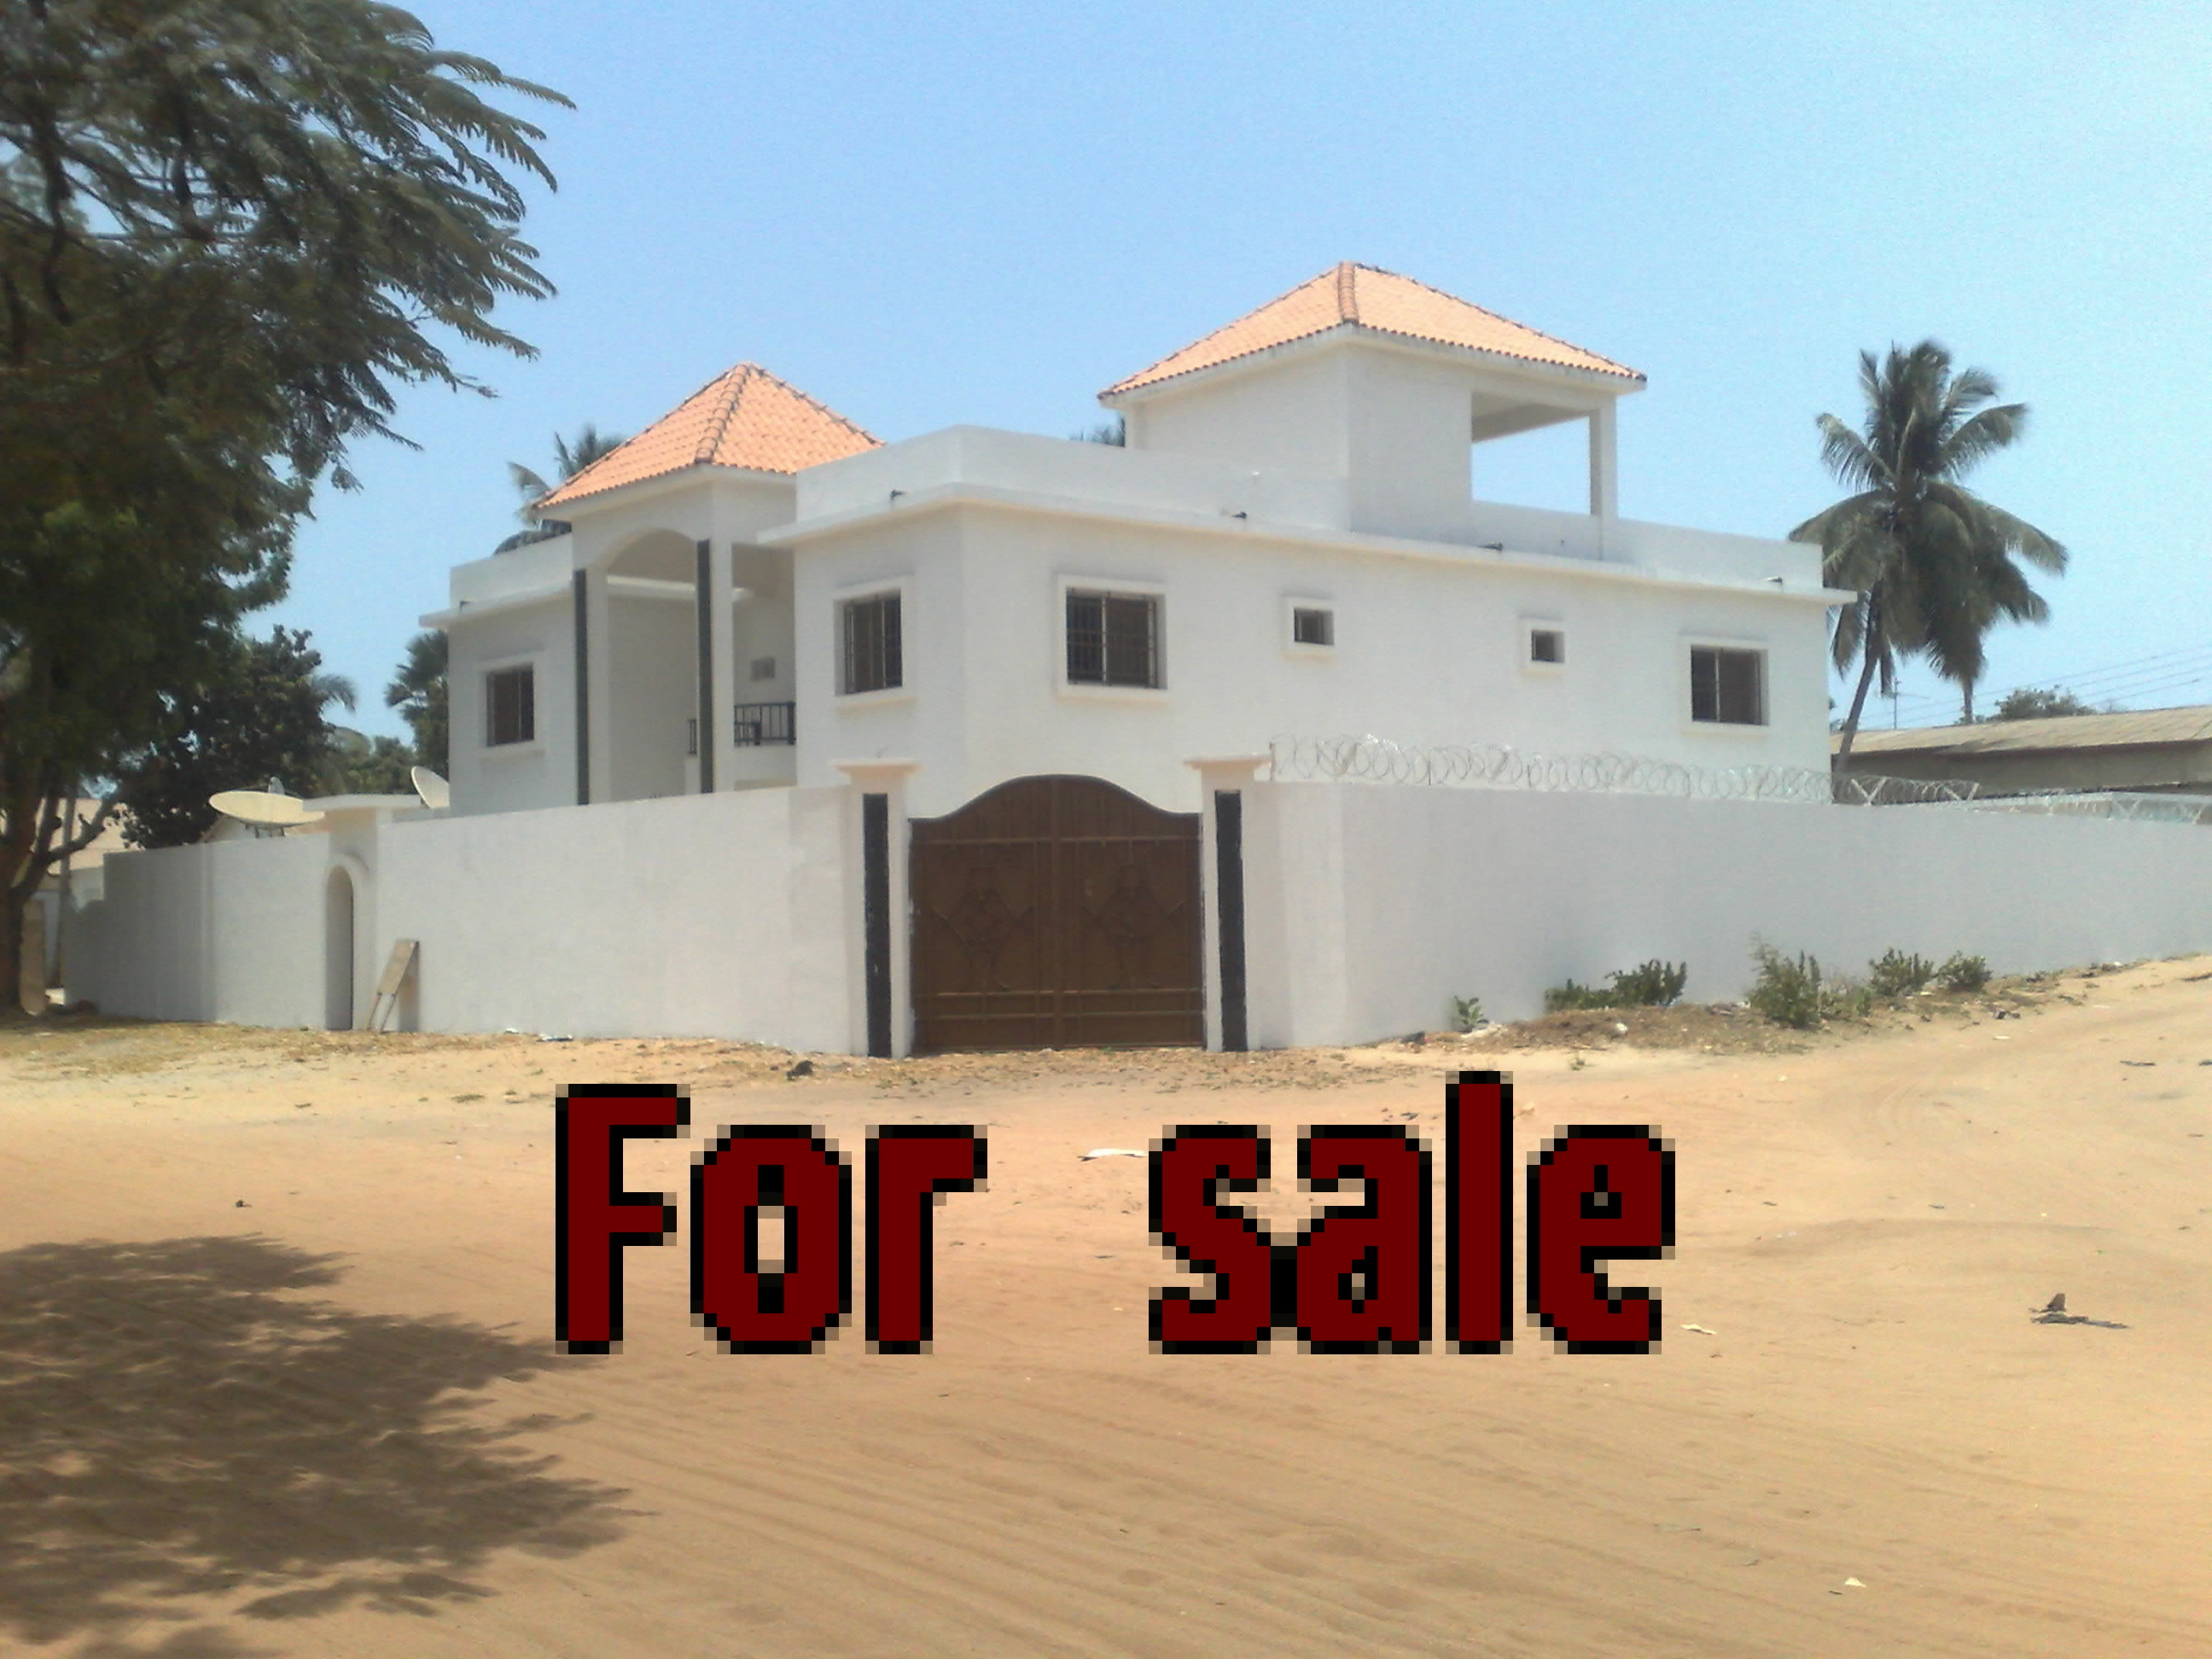 Holiday in the gambia business starters blog for House pictures for sale